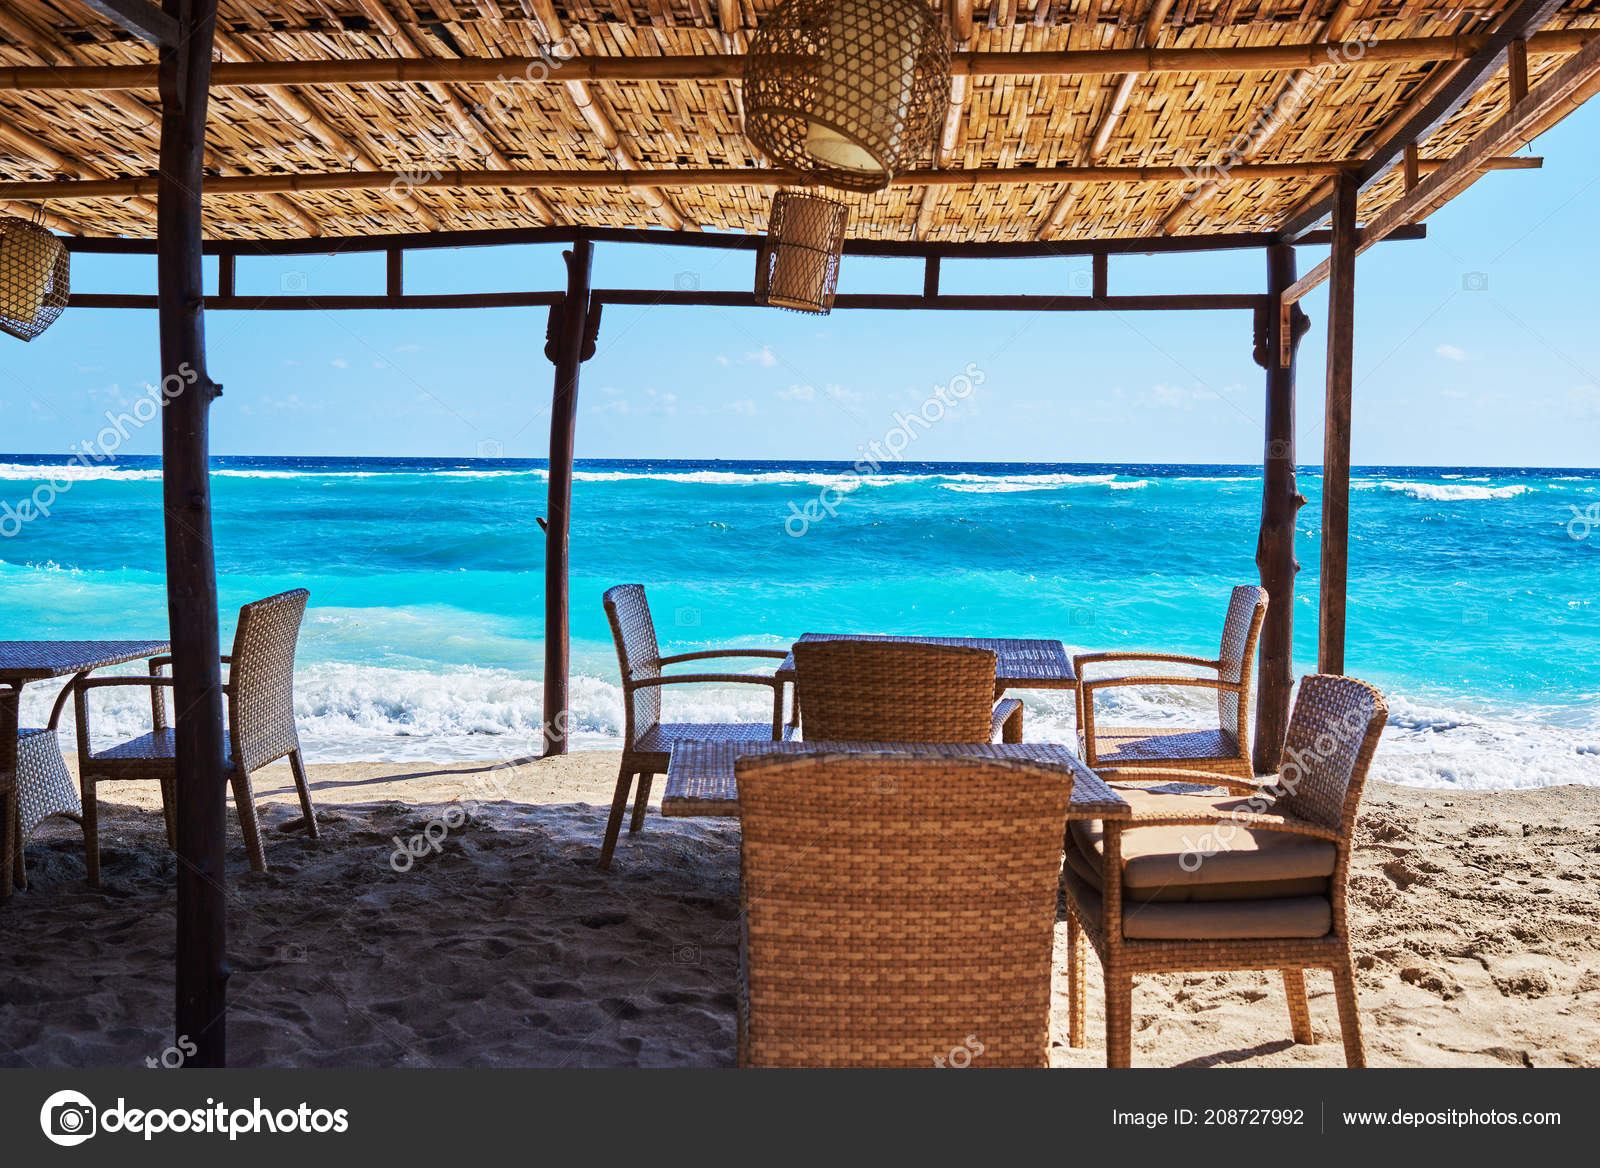 Empty outdoor furniture bar on the beach under the bamboo roof view towards the turquoise ocean summer seascape in the bright day during the high tide